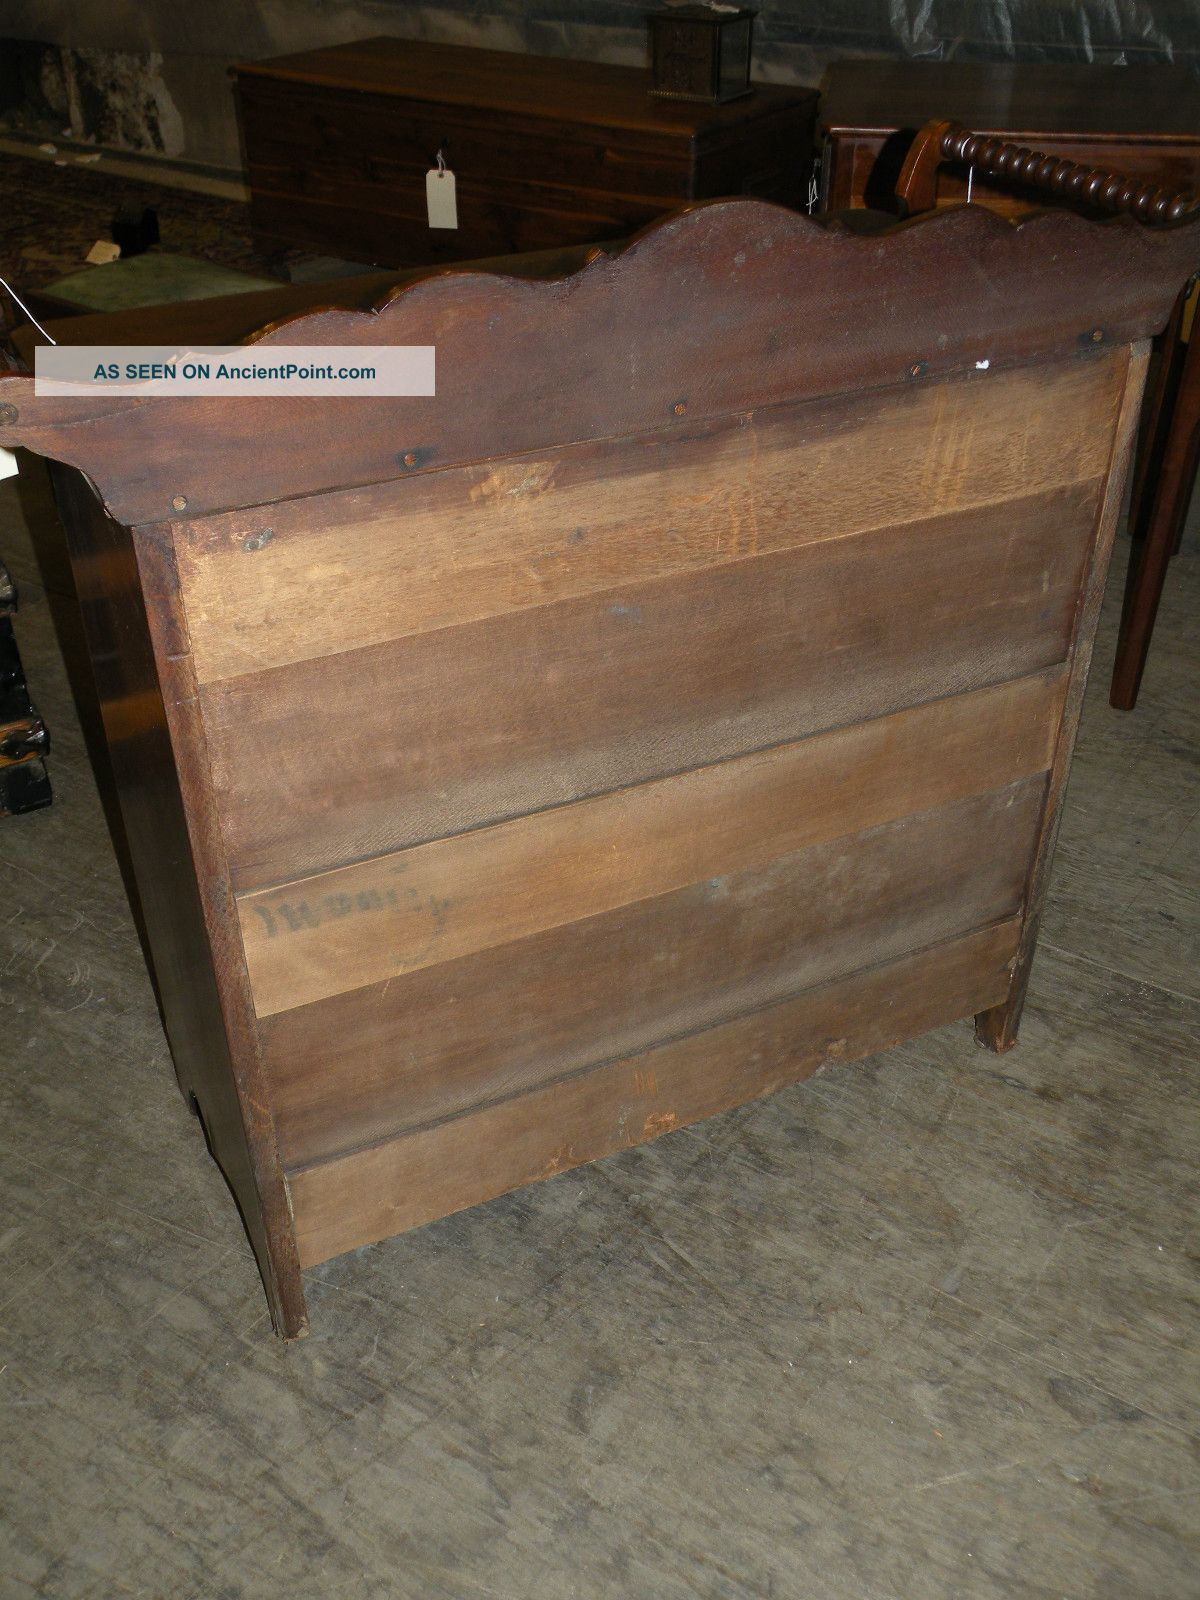 Antique bedroom furniture empire style washstand dresser with turned